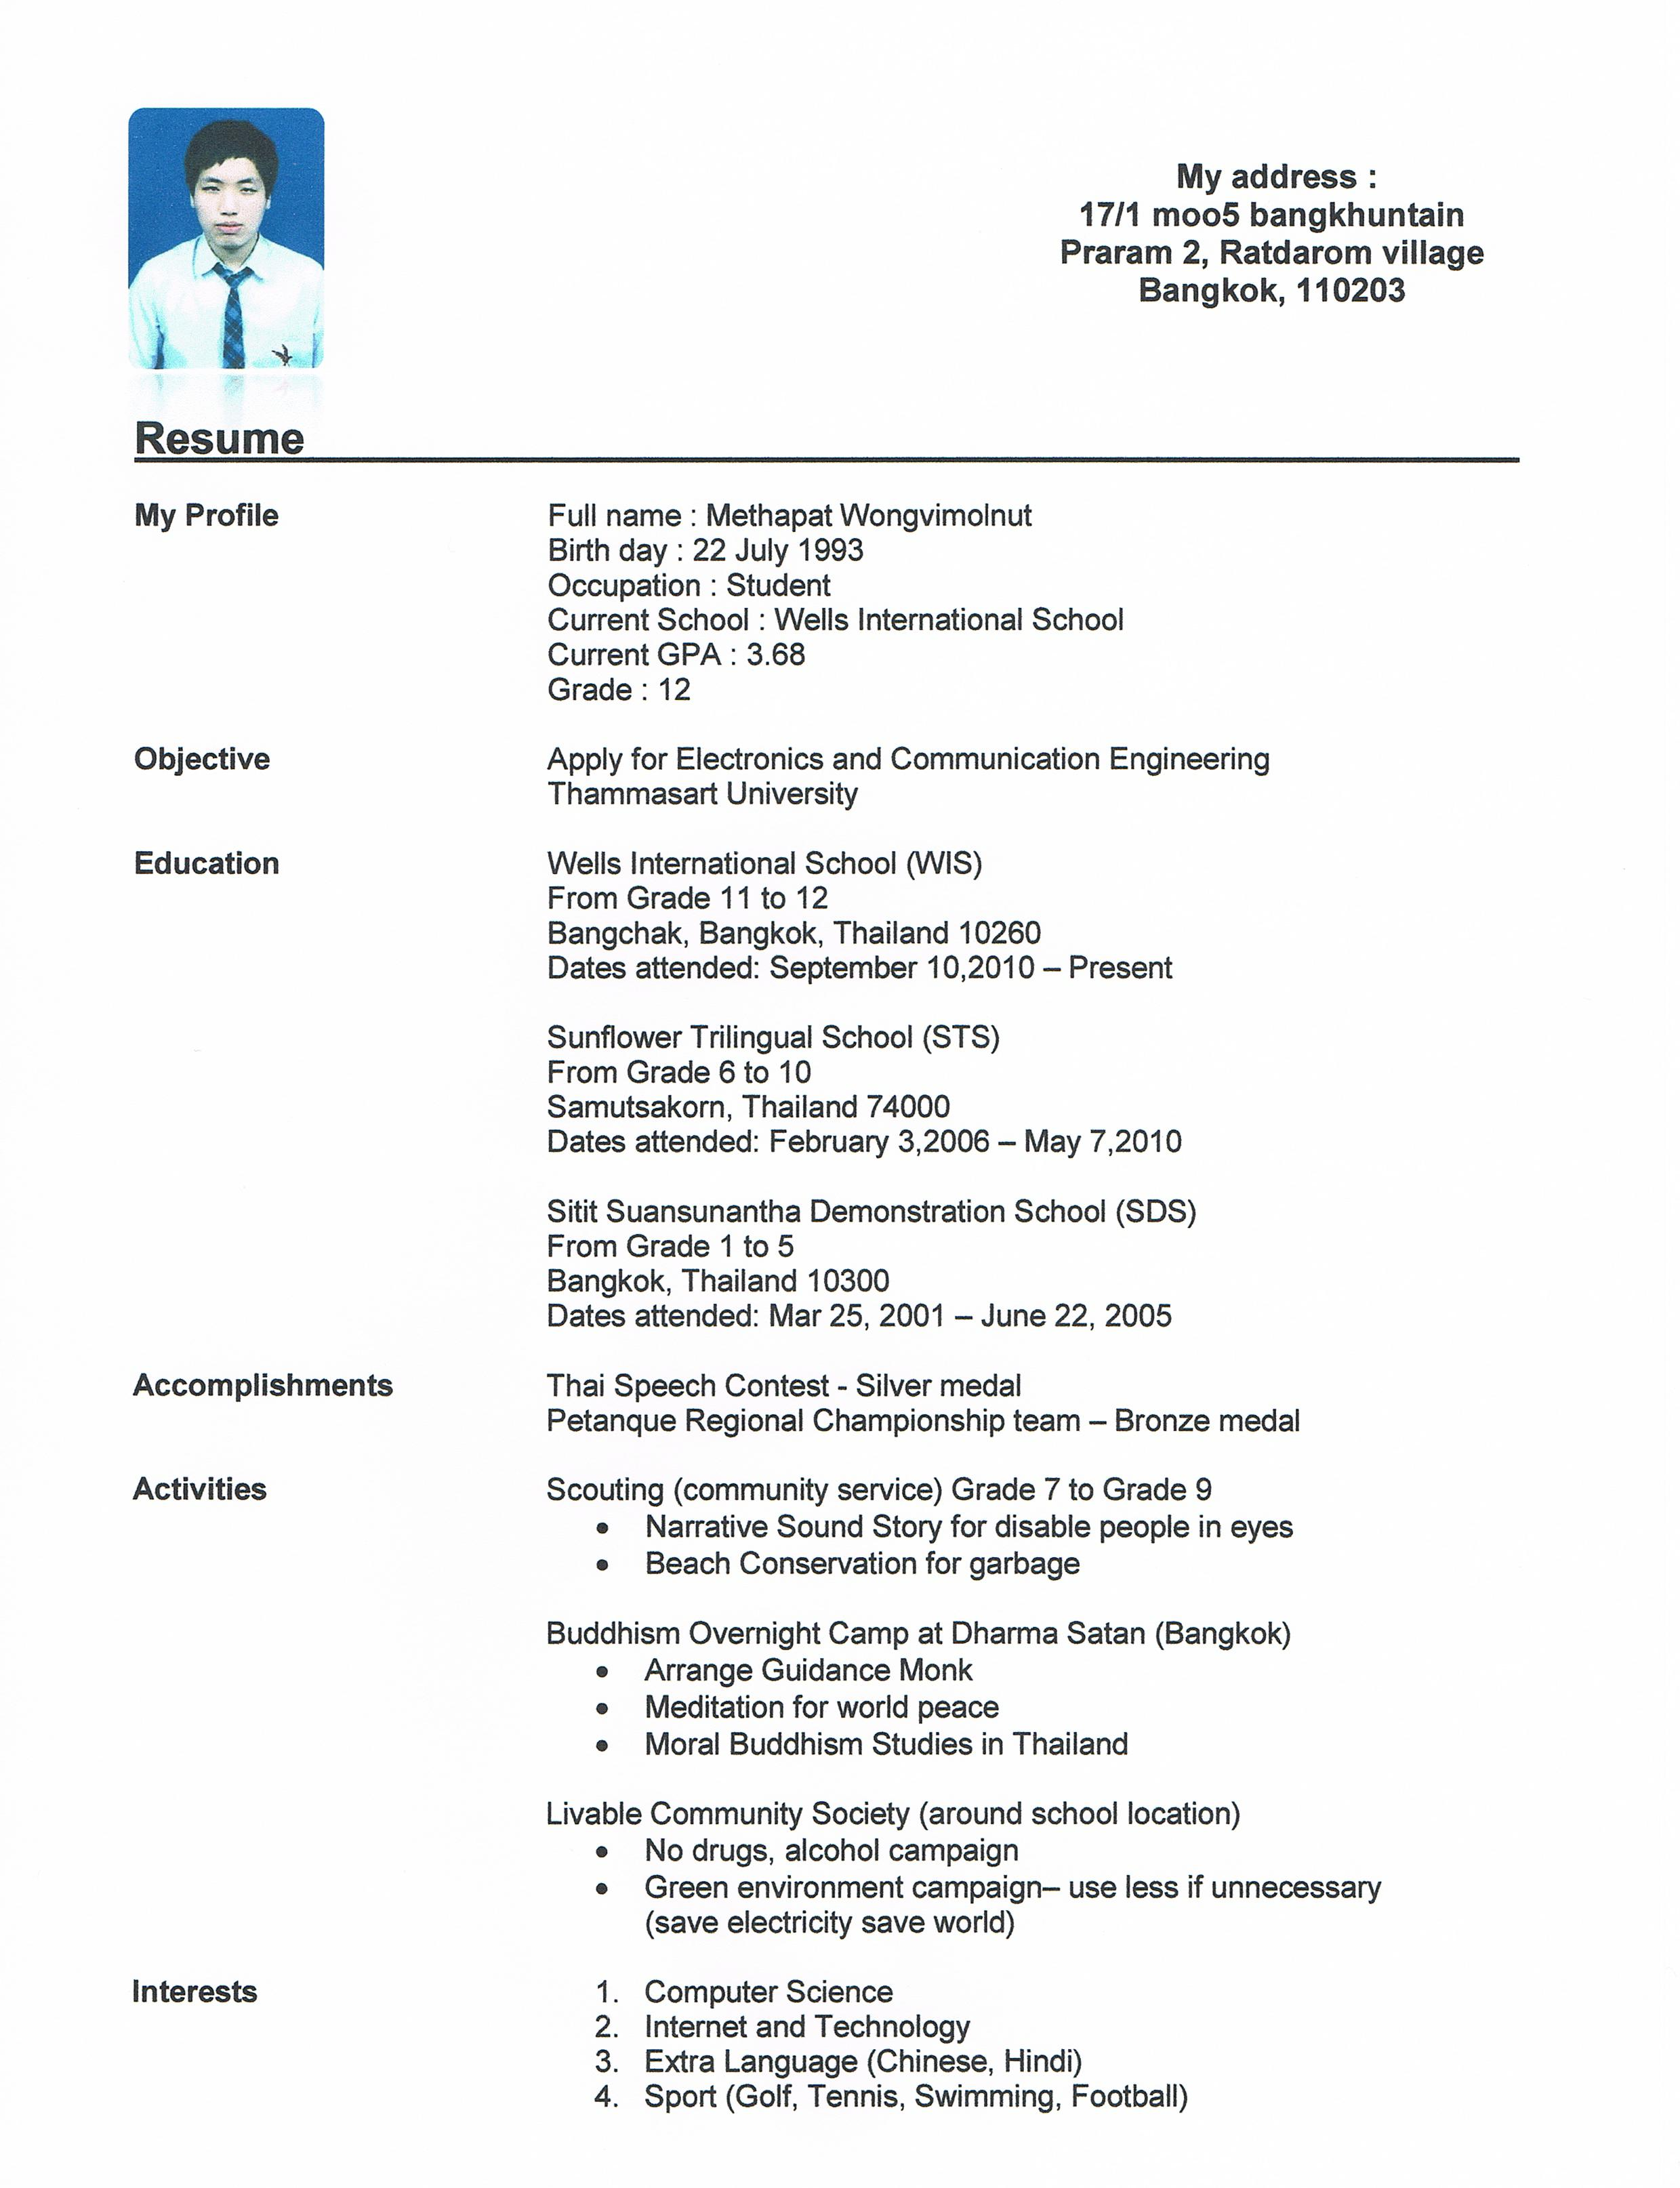 Sample resumes for high school students with no work experience